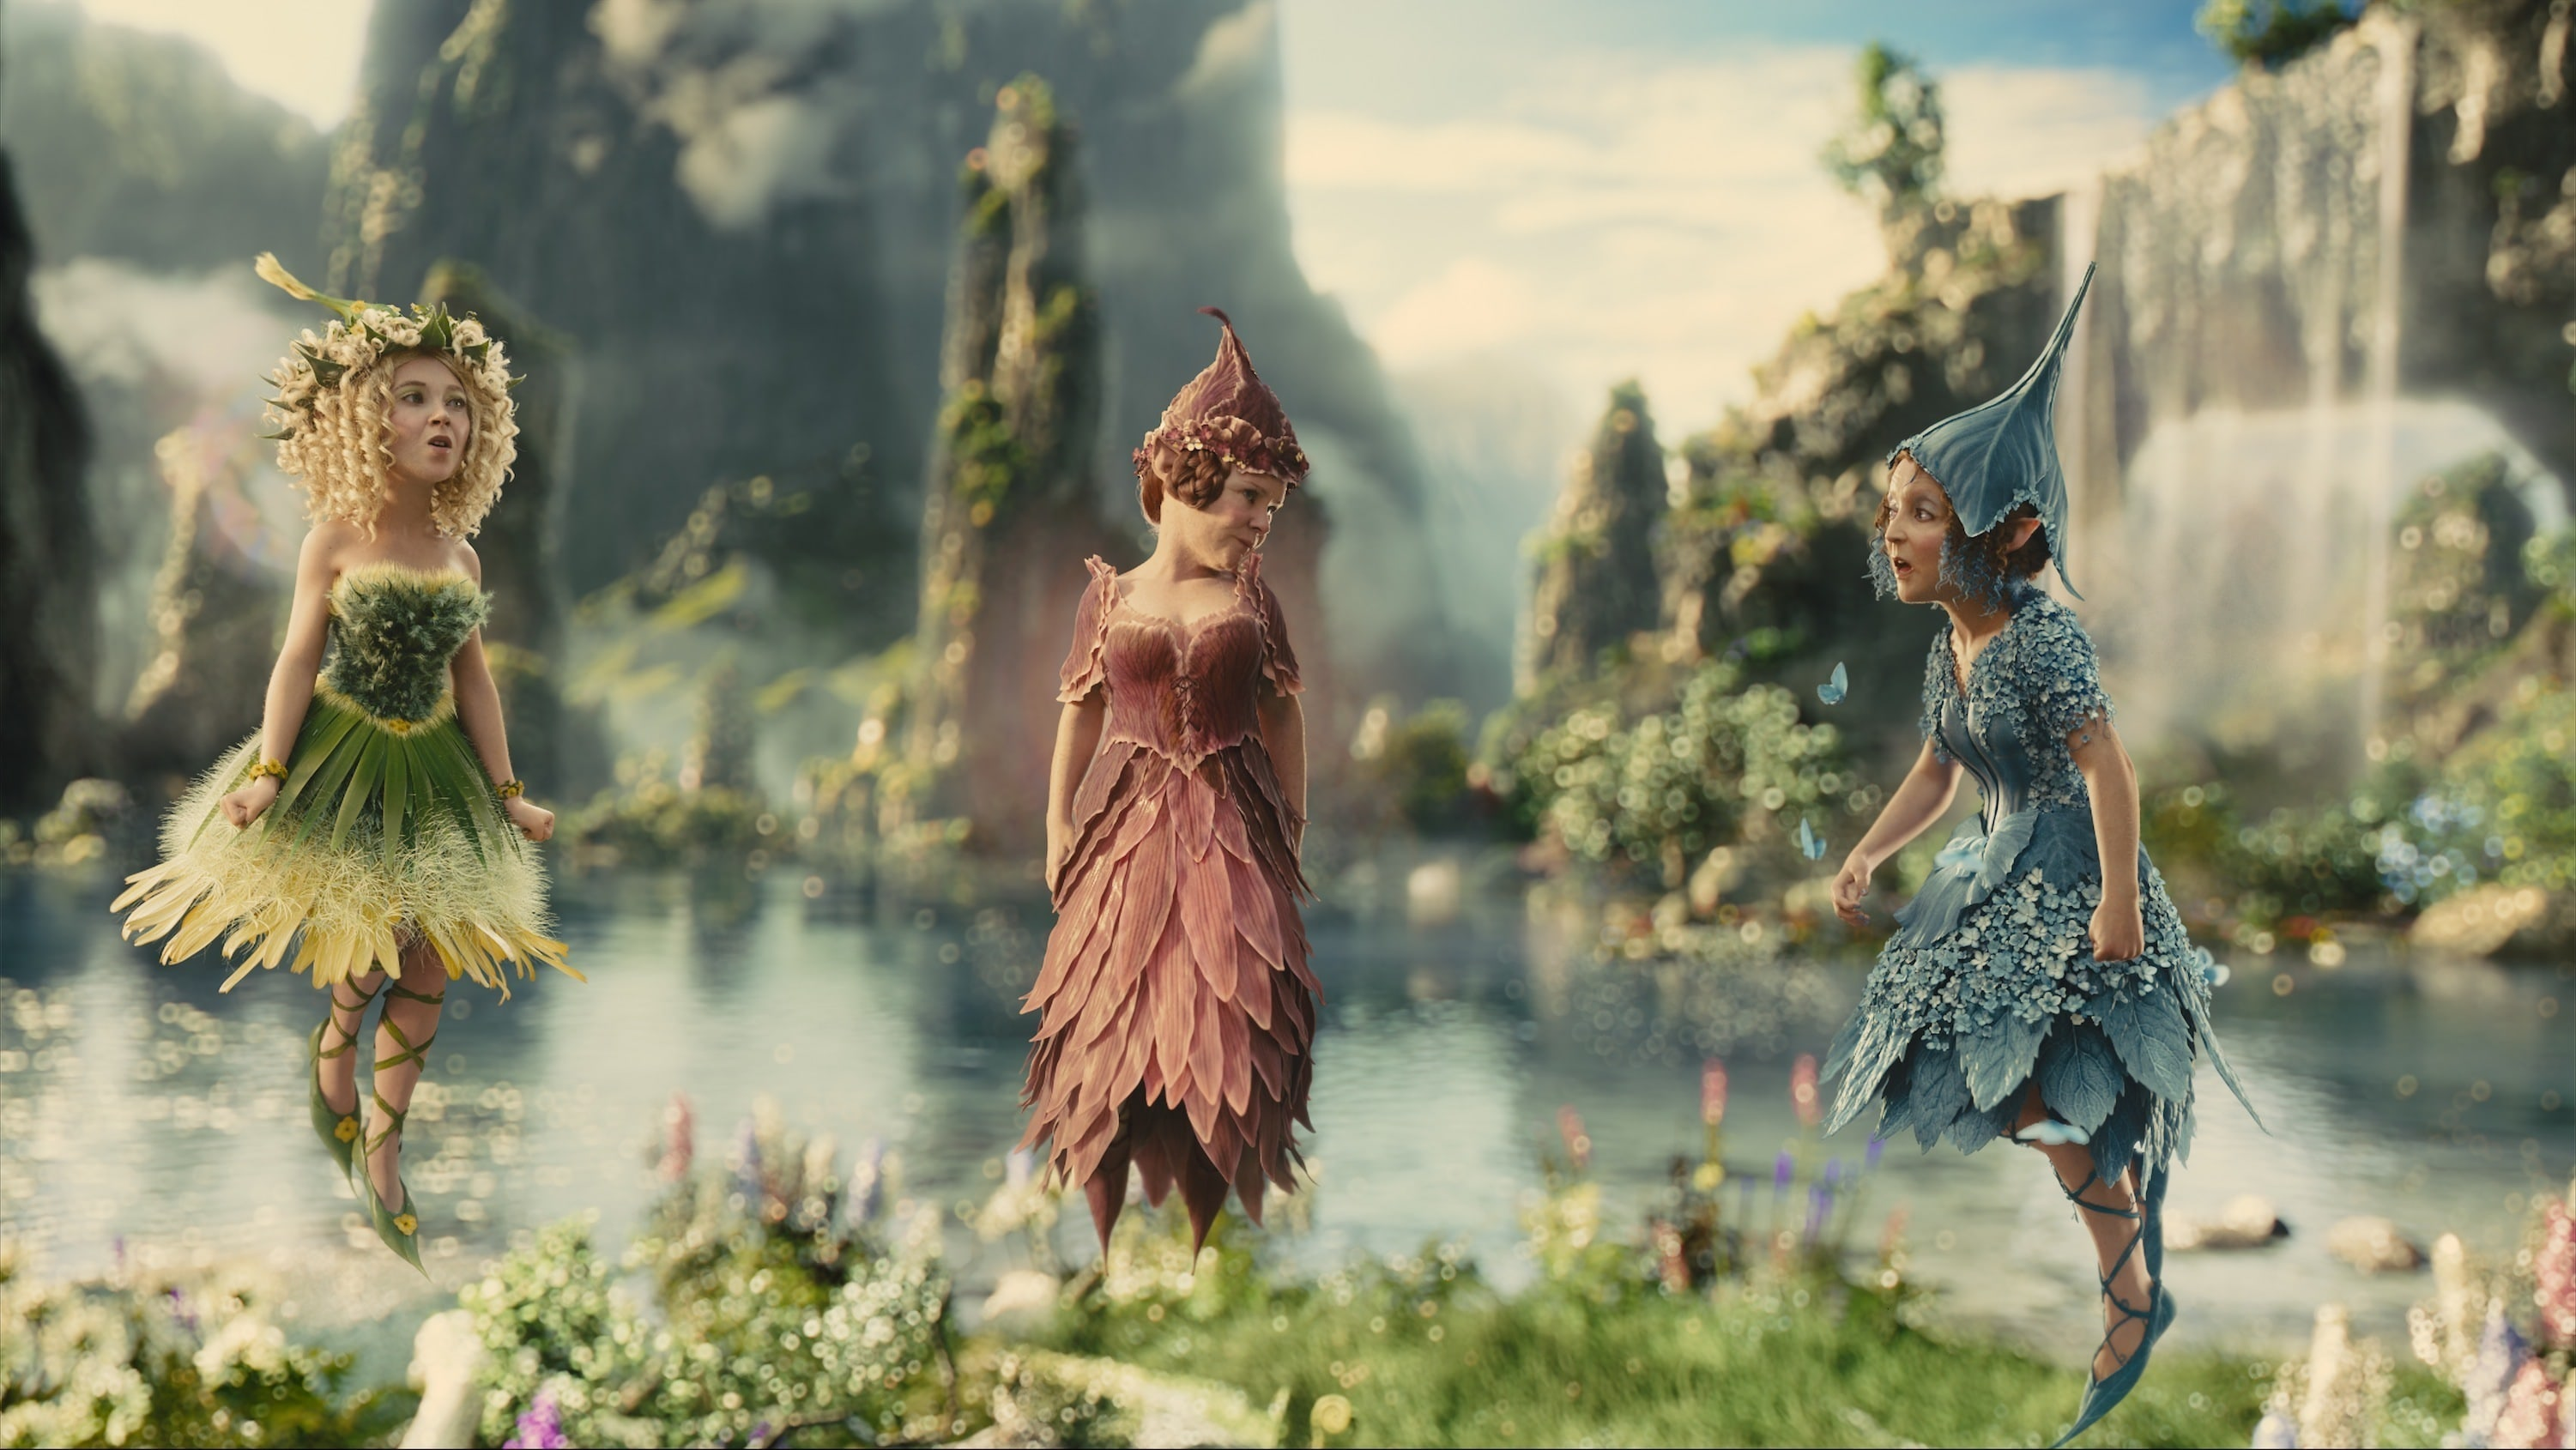 """The three flower pixies, Knotgrass (played by Imelda Stauton), Flittle (played by Lesley Manville), and Thistlewhit (played by Juno Temple) in the movie """"Maleficent"""""""